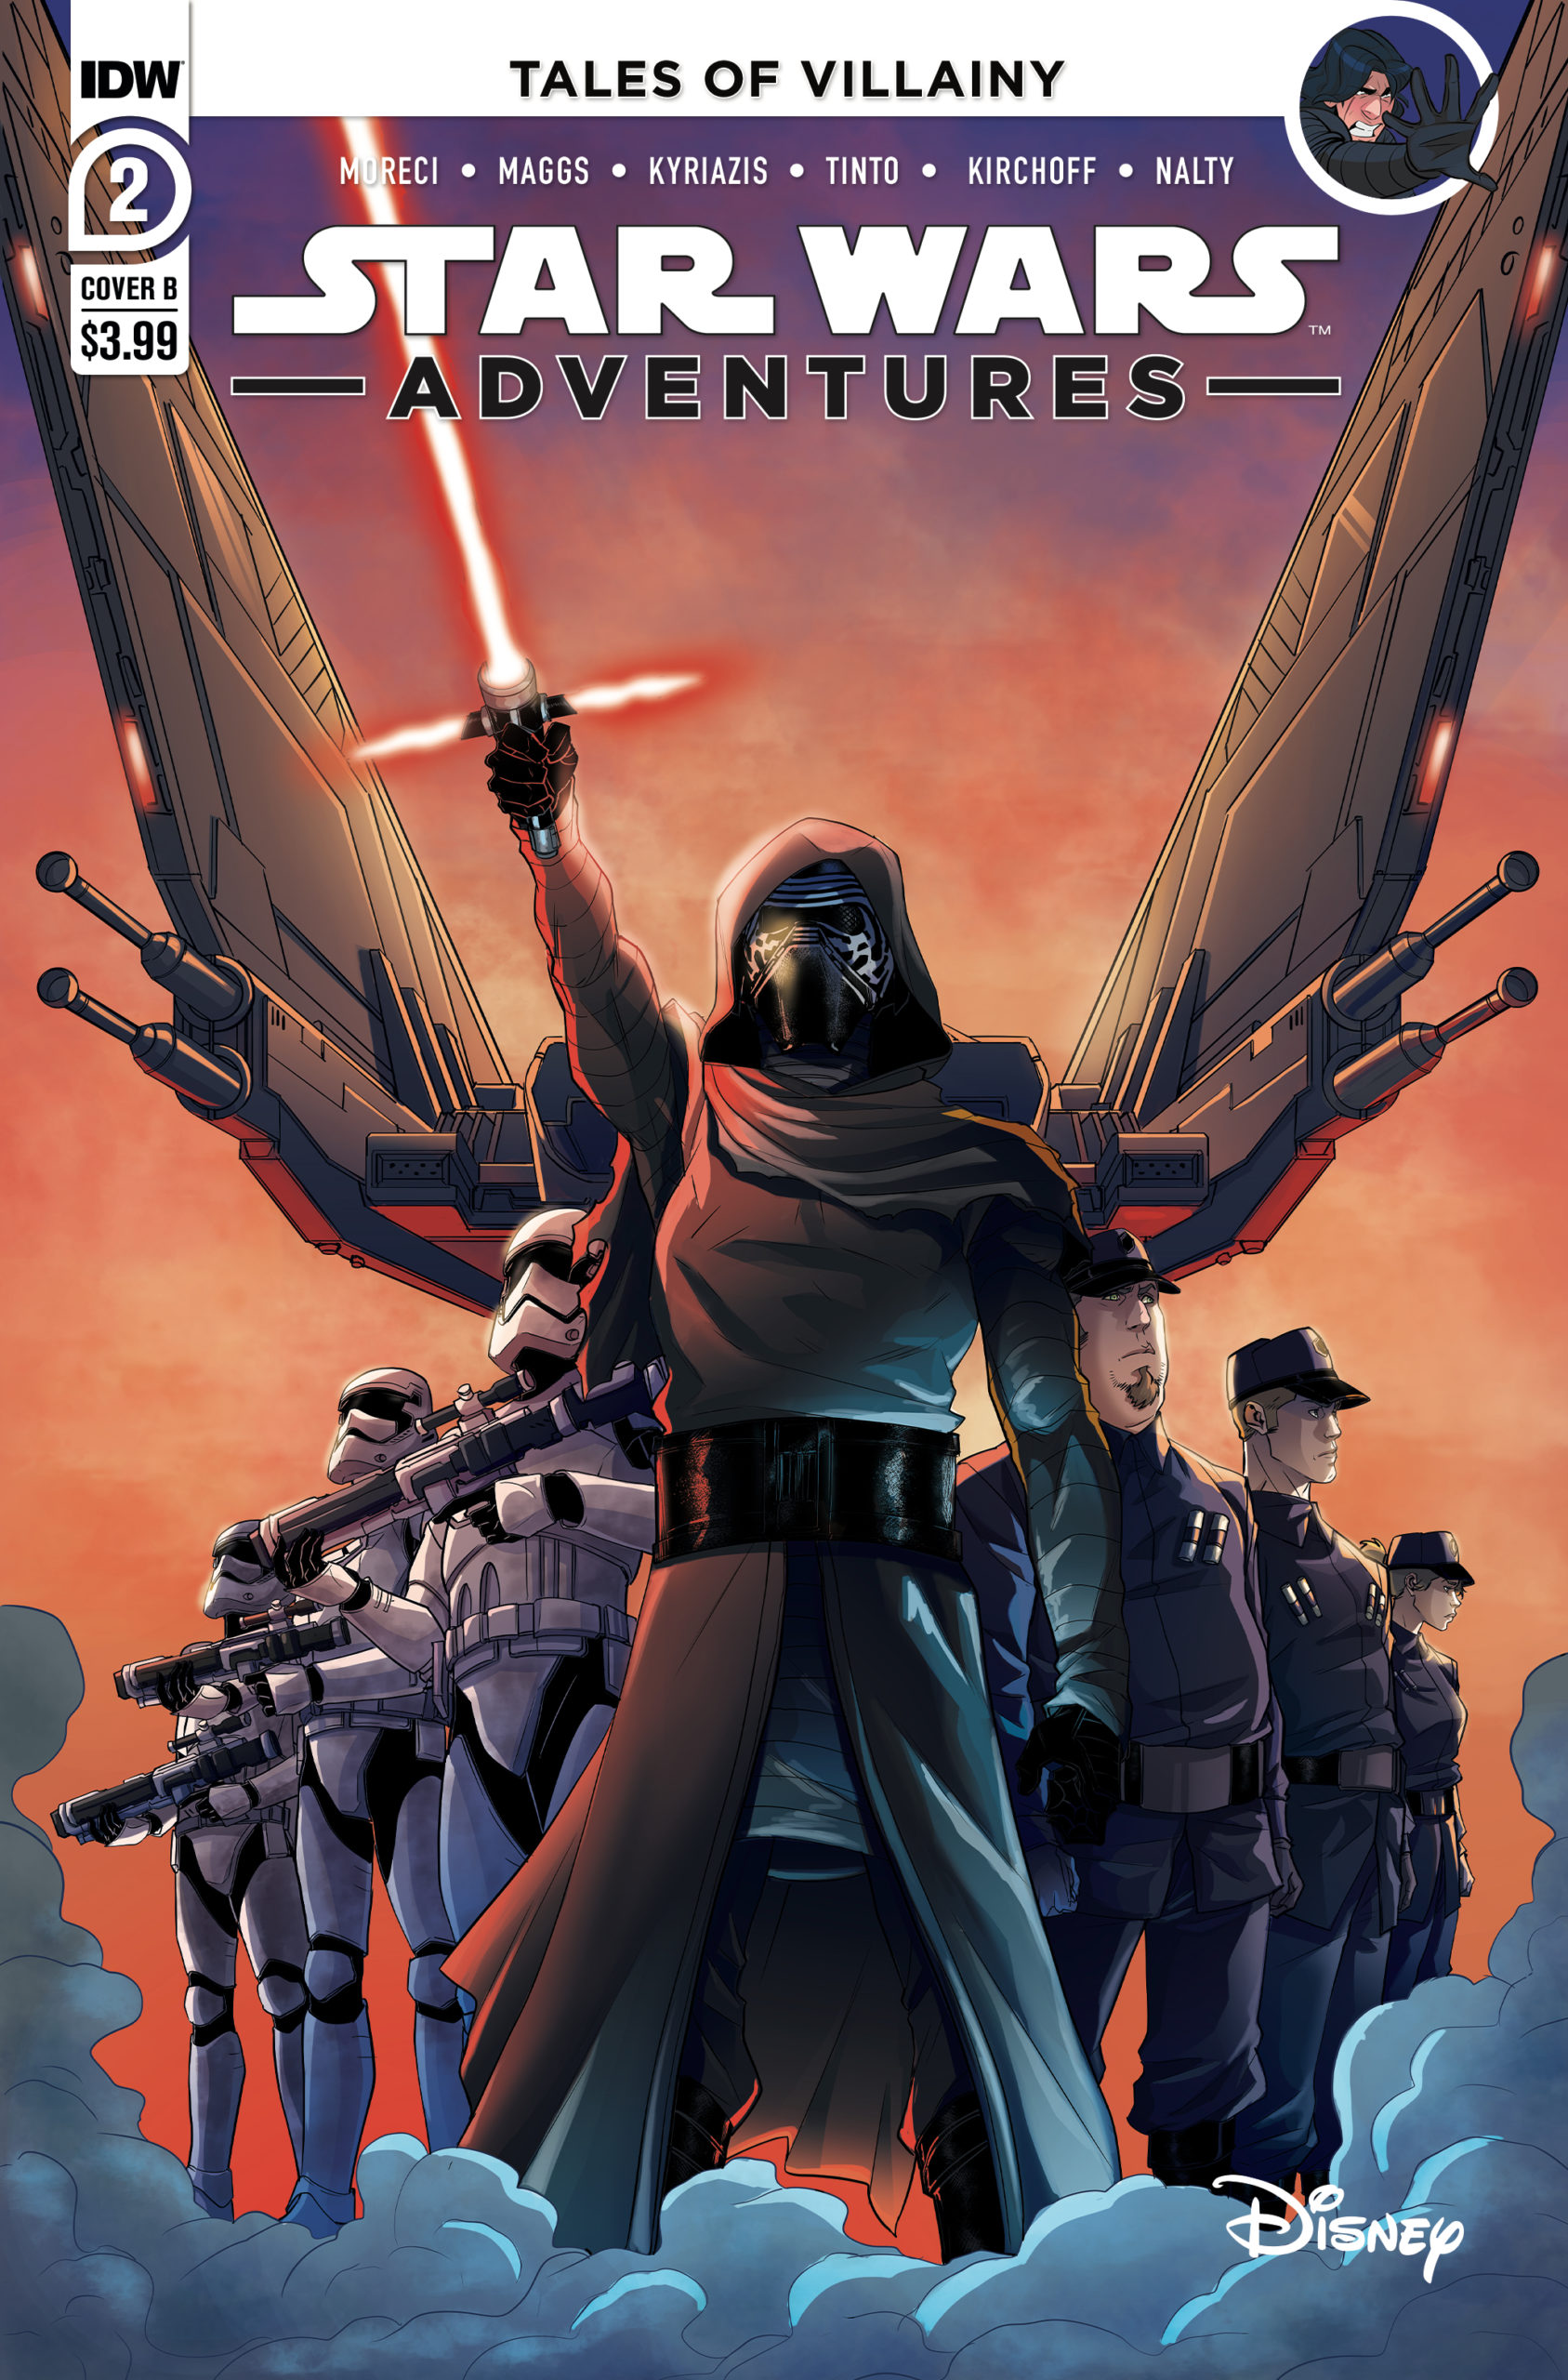 Star Wars Adventures #2 (Cover B by Davide Tinto) (25.11.2020)